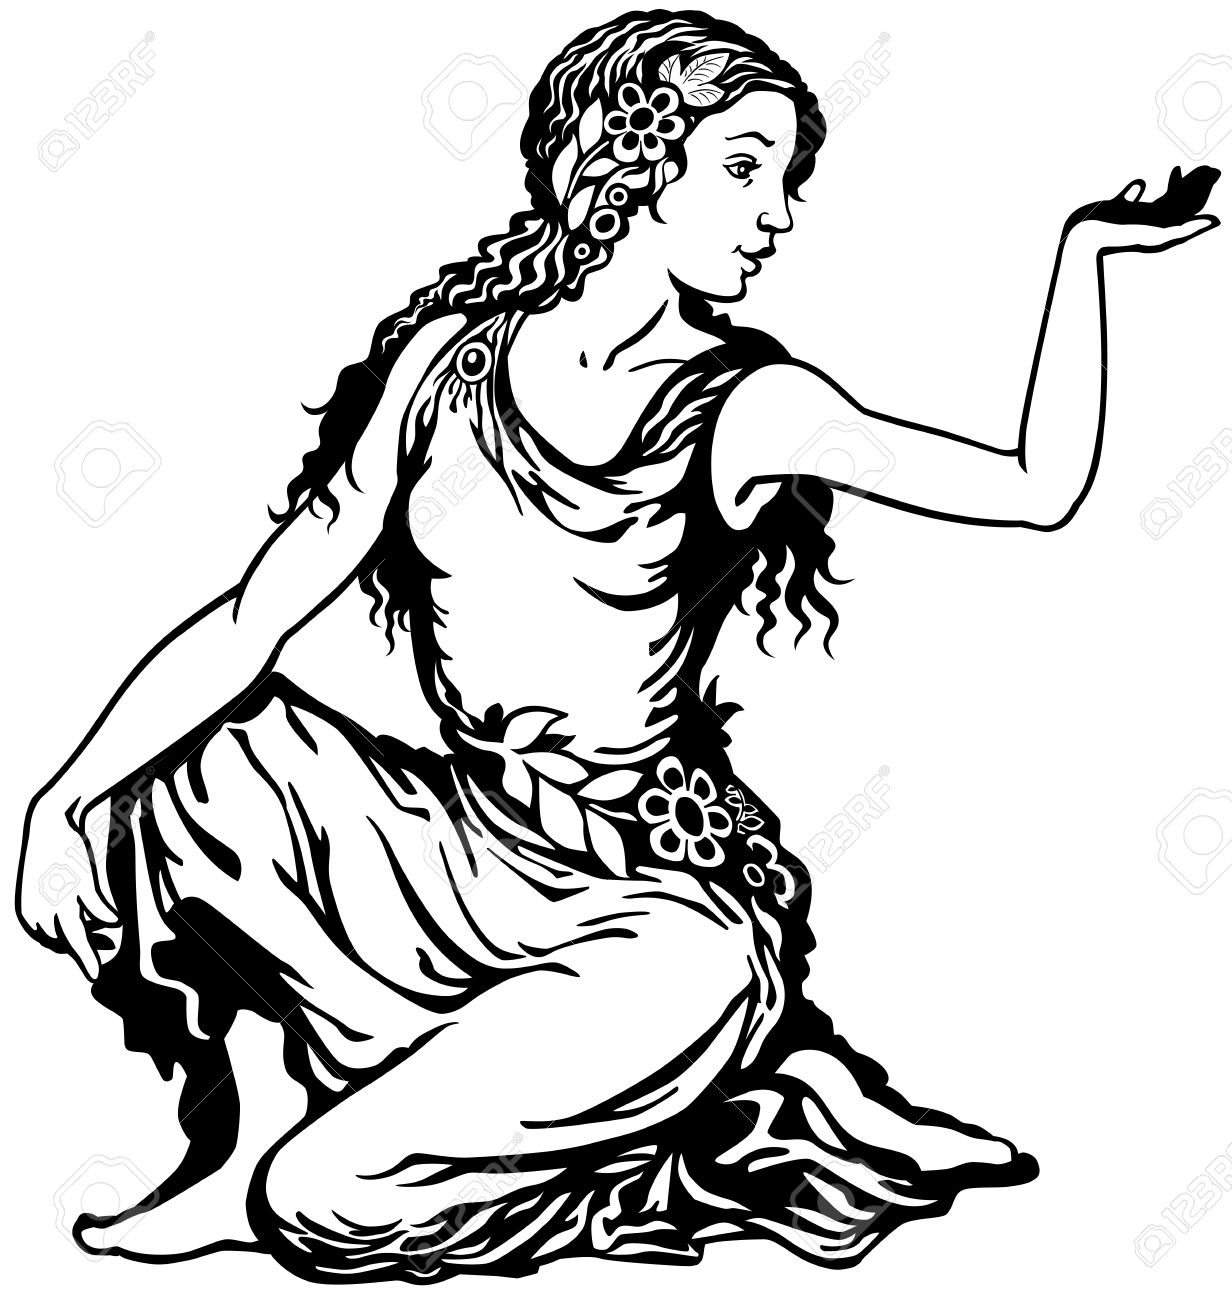 young woman, virgo astrological zodiac sign, black and white